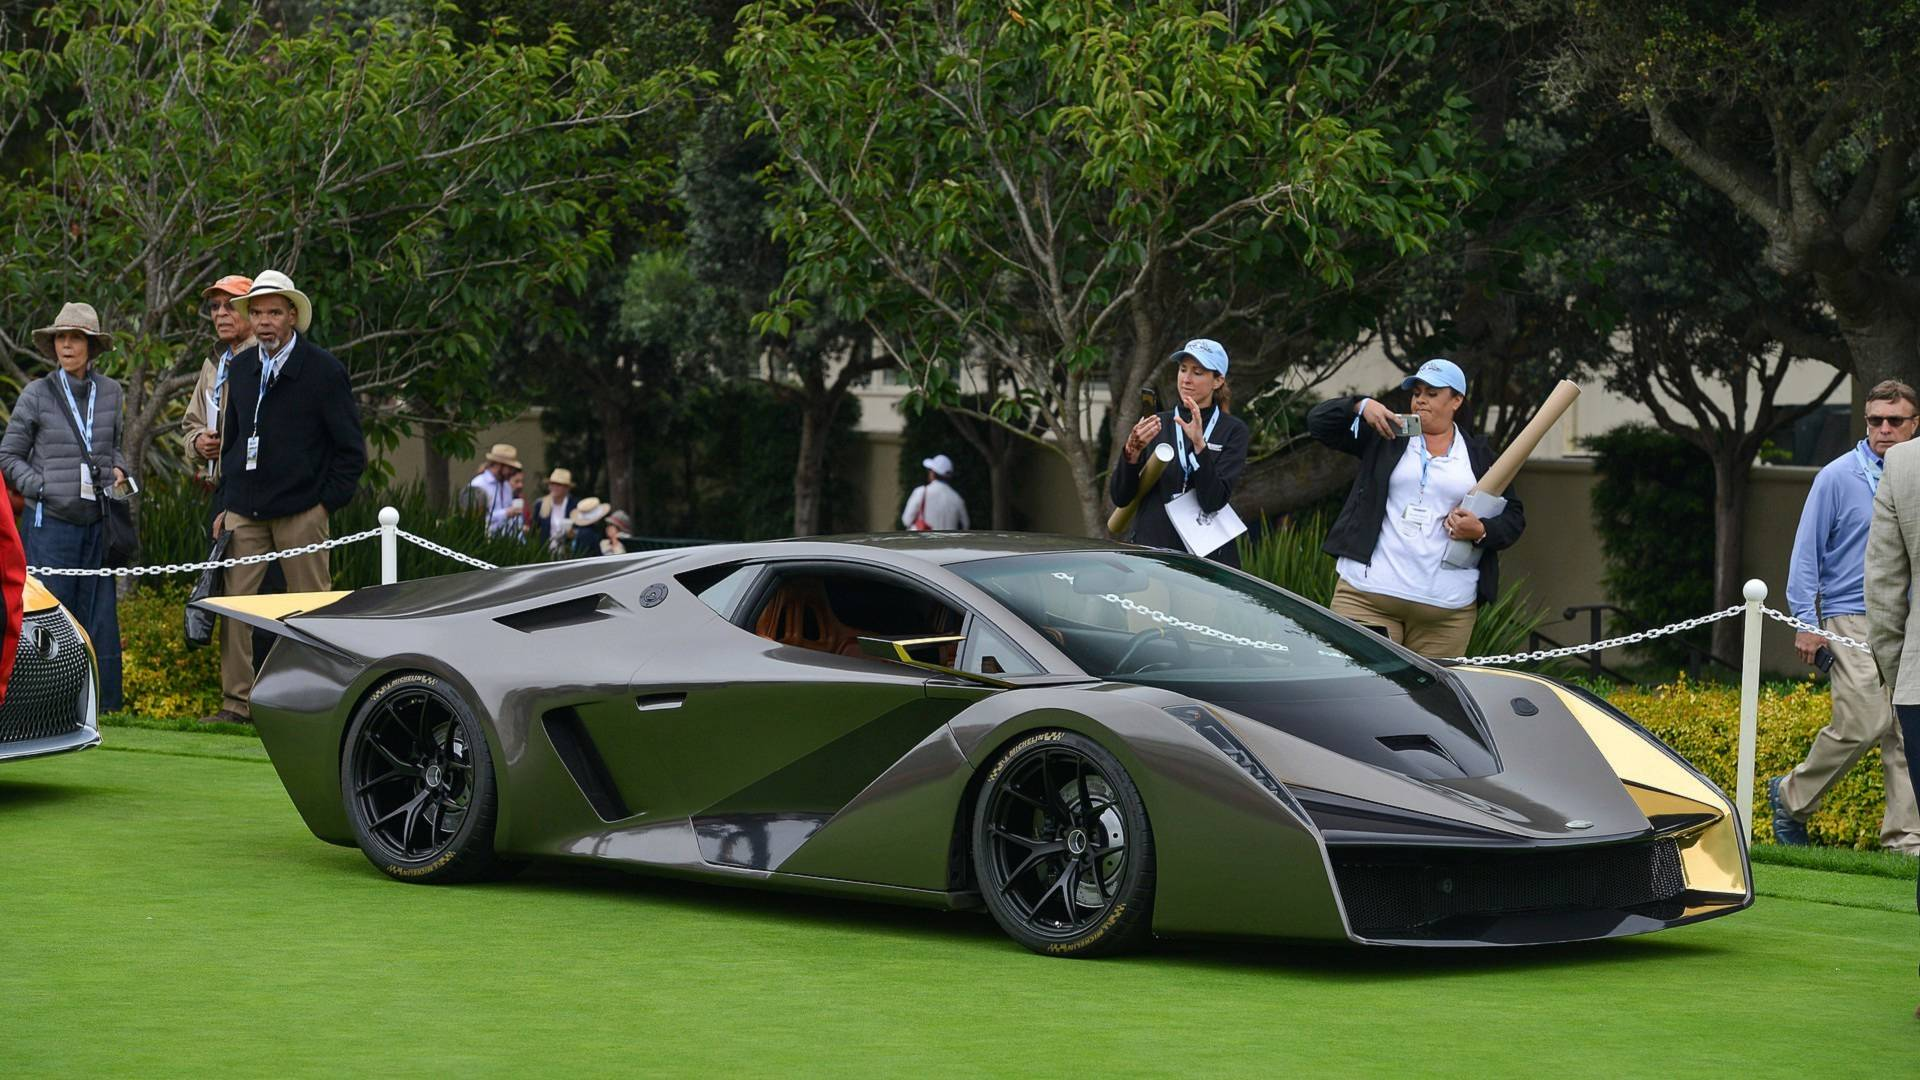 Salaff, a young coachbuilder company founded by Mazda ex-designer Carlos Salaff, has come to the Pebble Beach car show with its first production-ready vehicle, named the C2